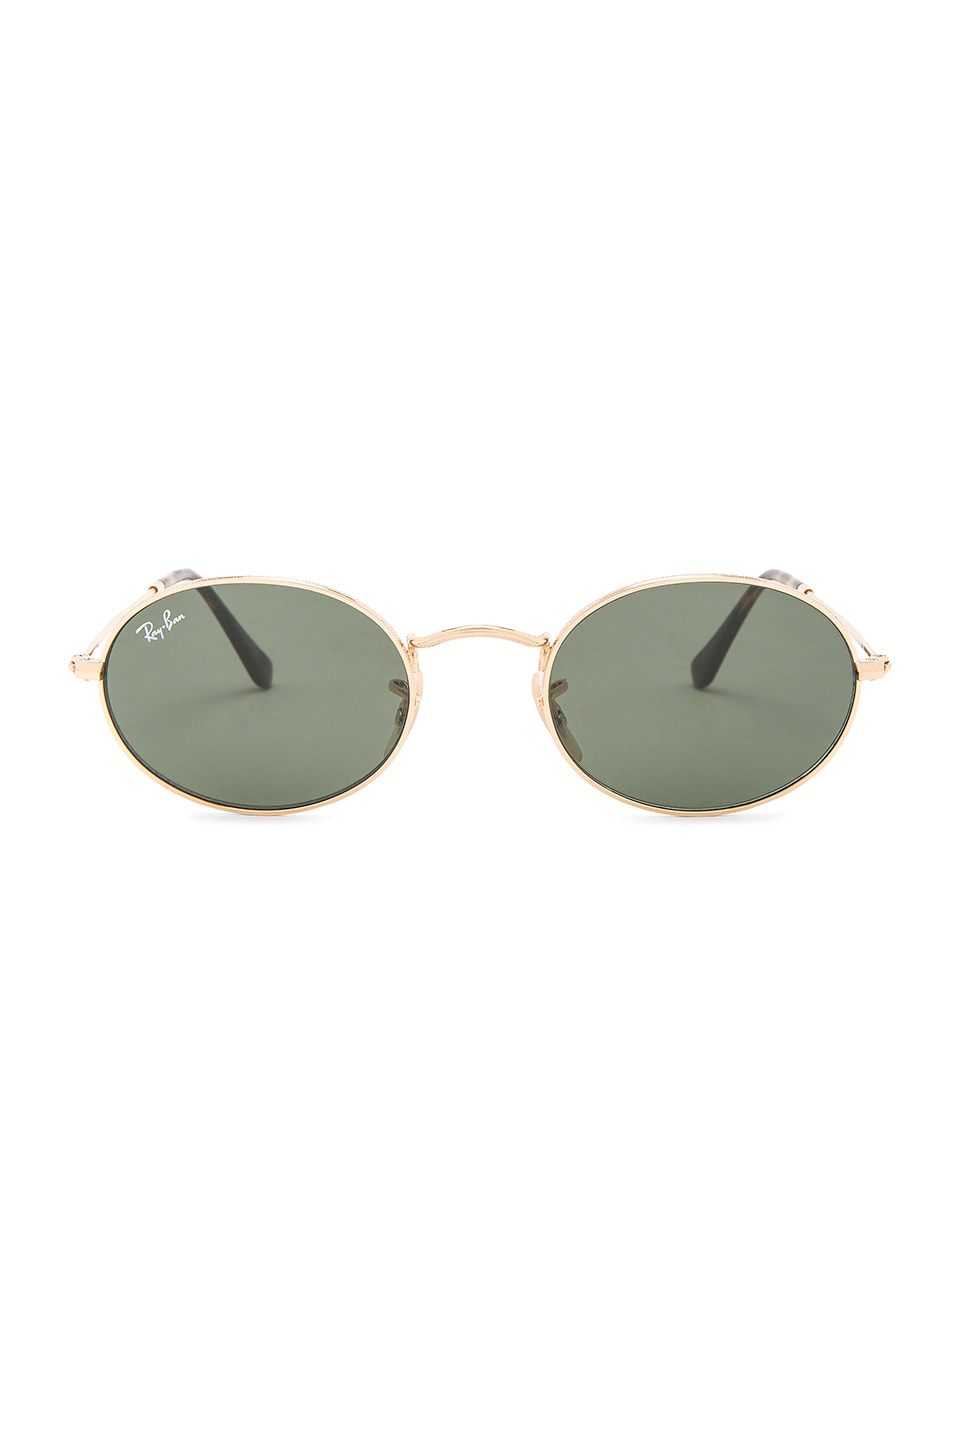 bc039c903ba Ray-Ban Oval Flat in Gold   Green Classic